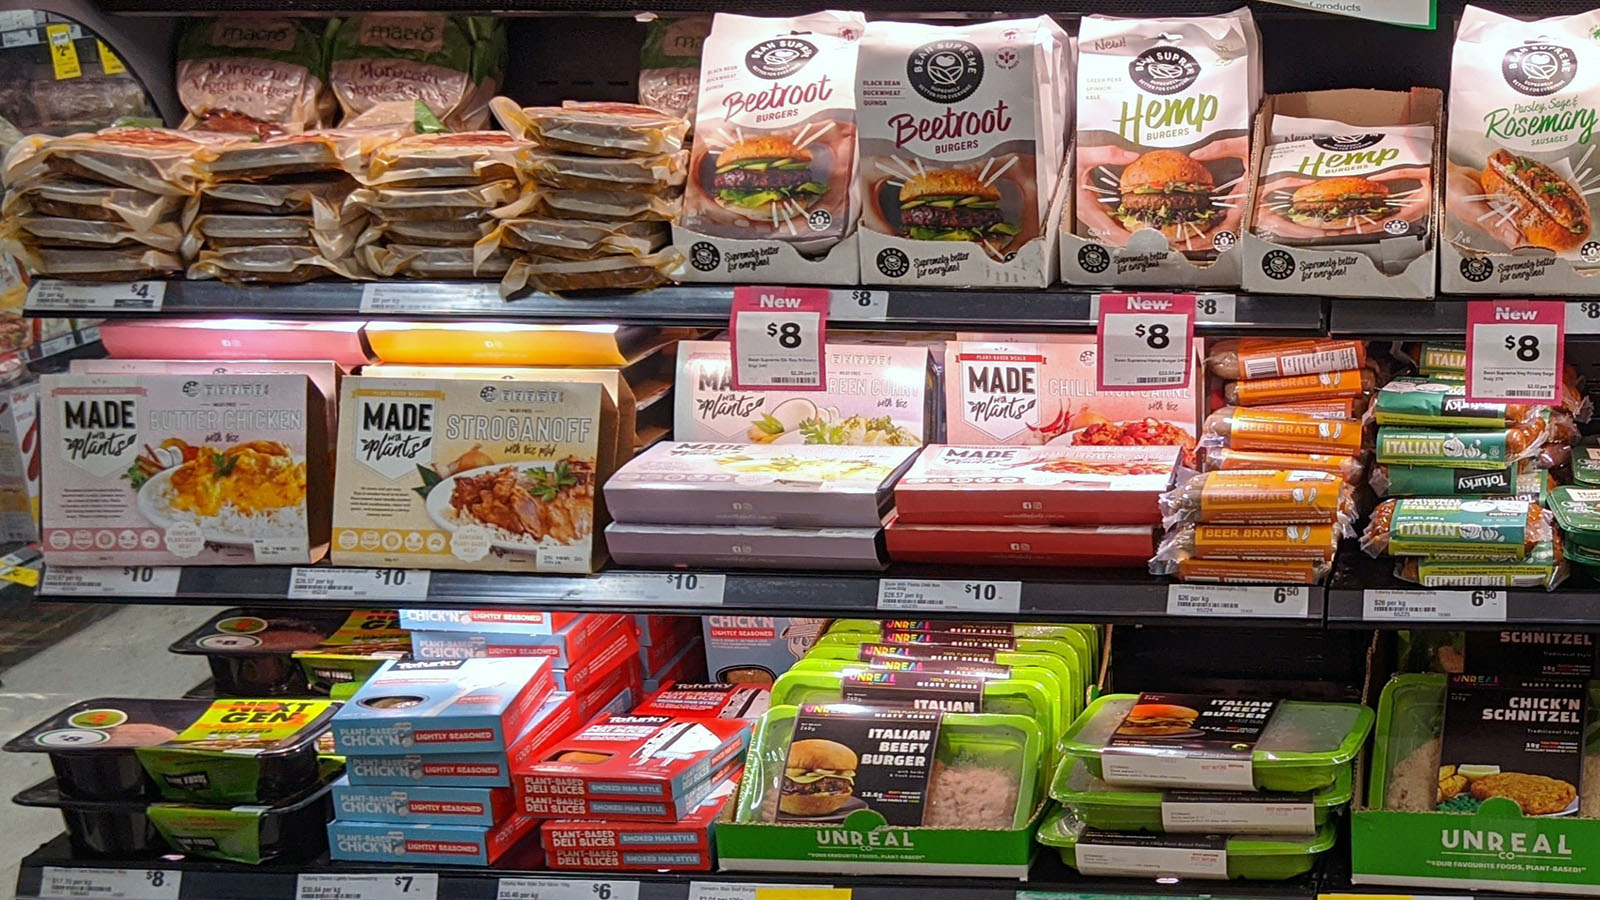 Pre-packaged plant-based meat and other alternative protein products in the fridge section of a supermarket